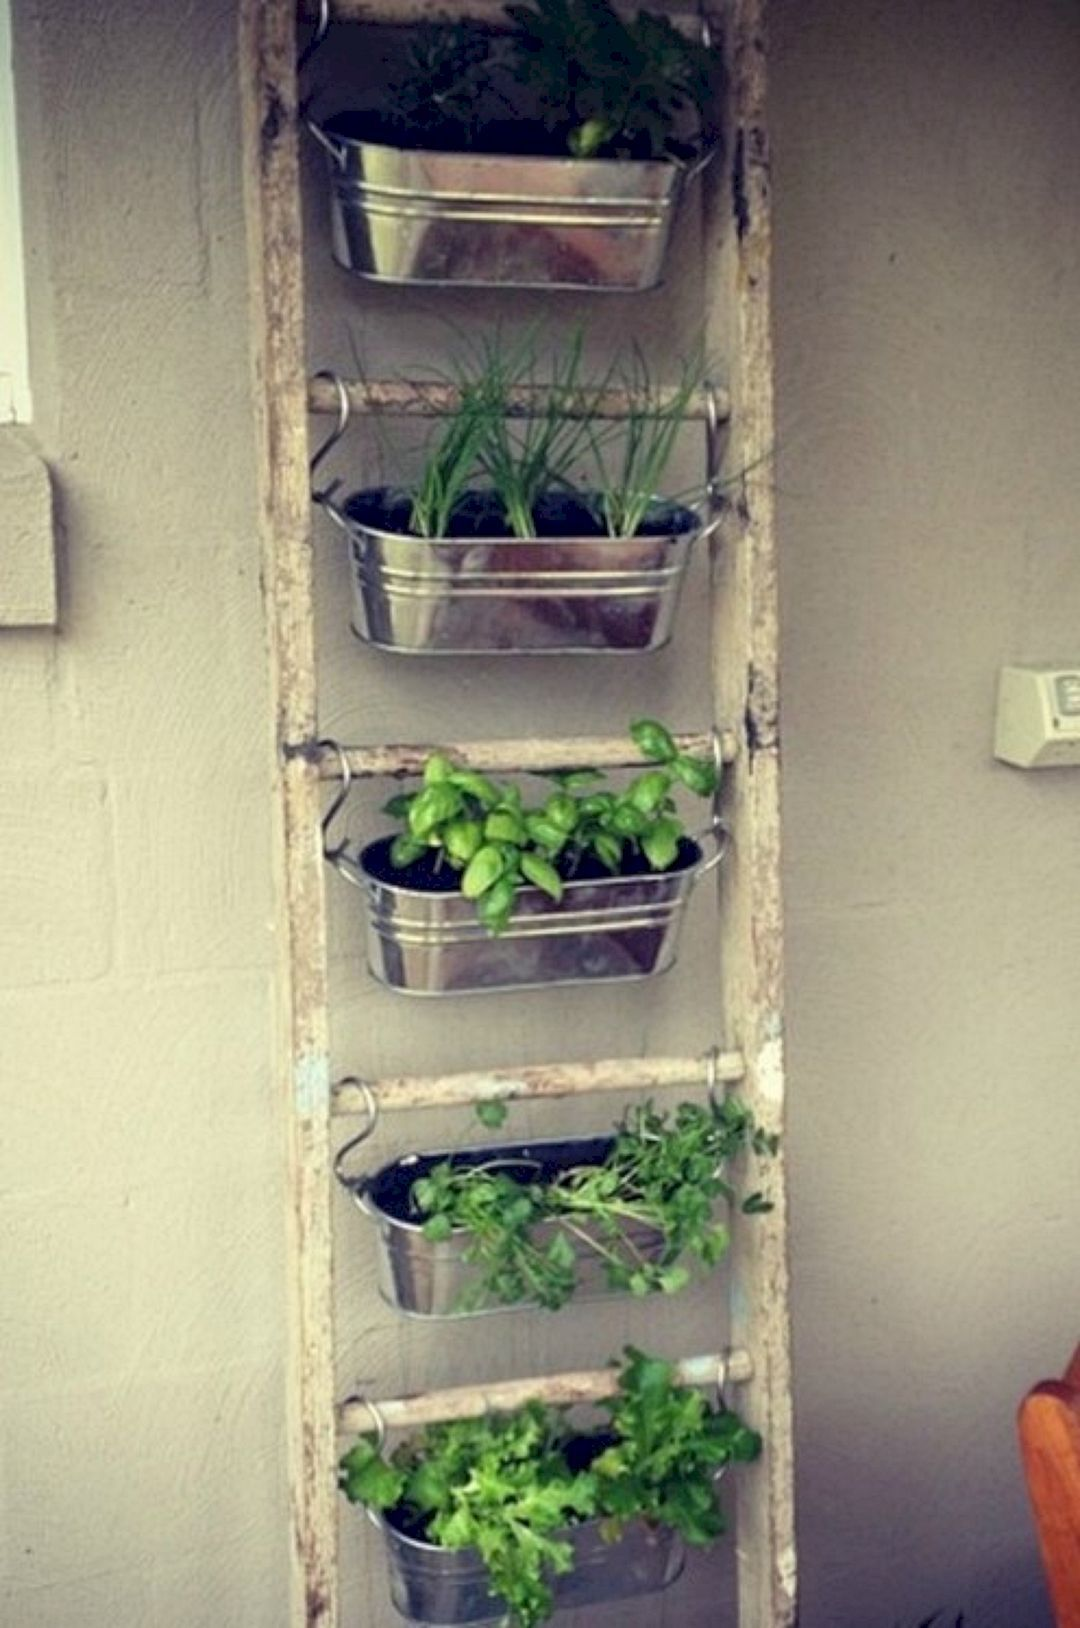 Merveilleux Breathtaking 45+ Best Indoor Herb Garden Ideas For Your Small Home And  Apartment Https: